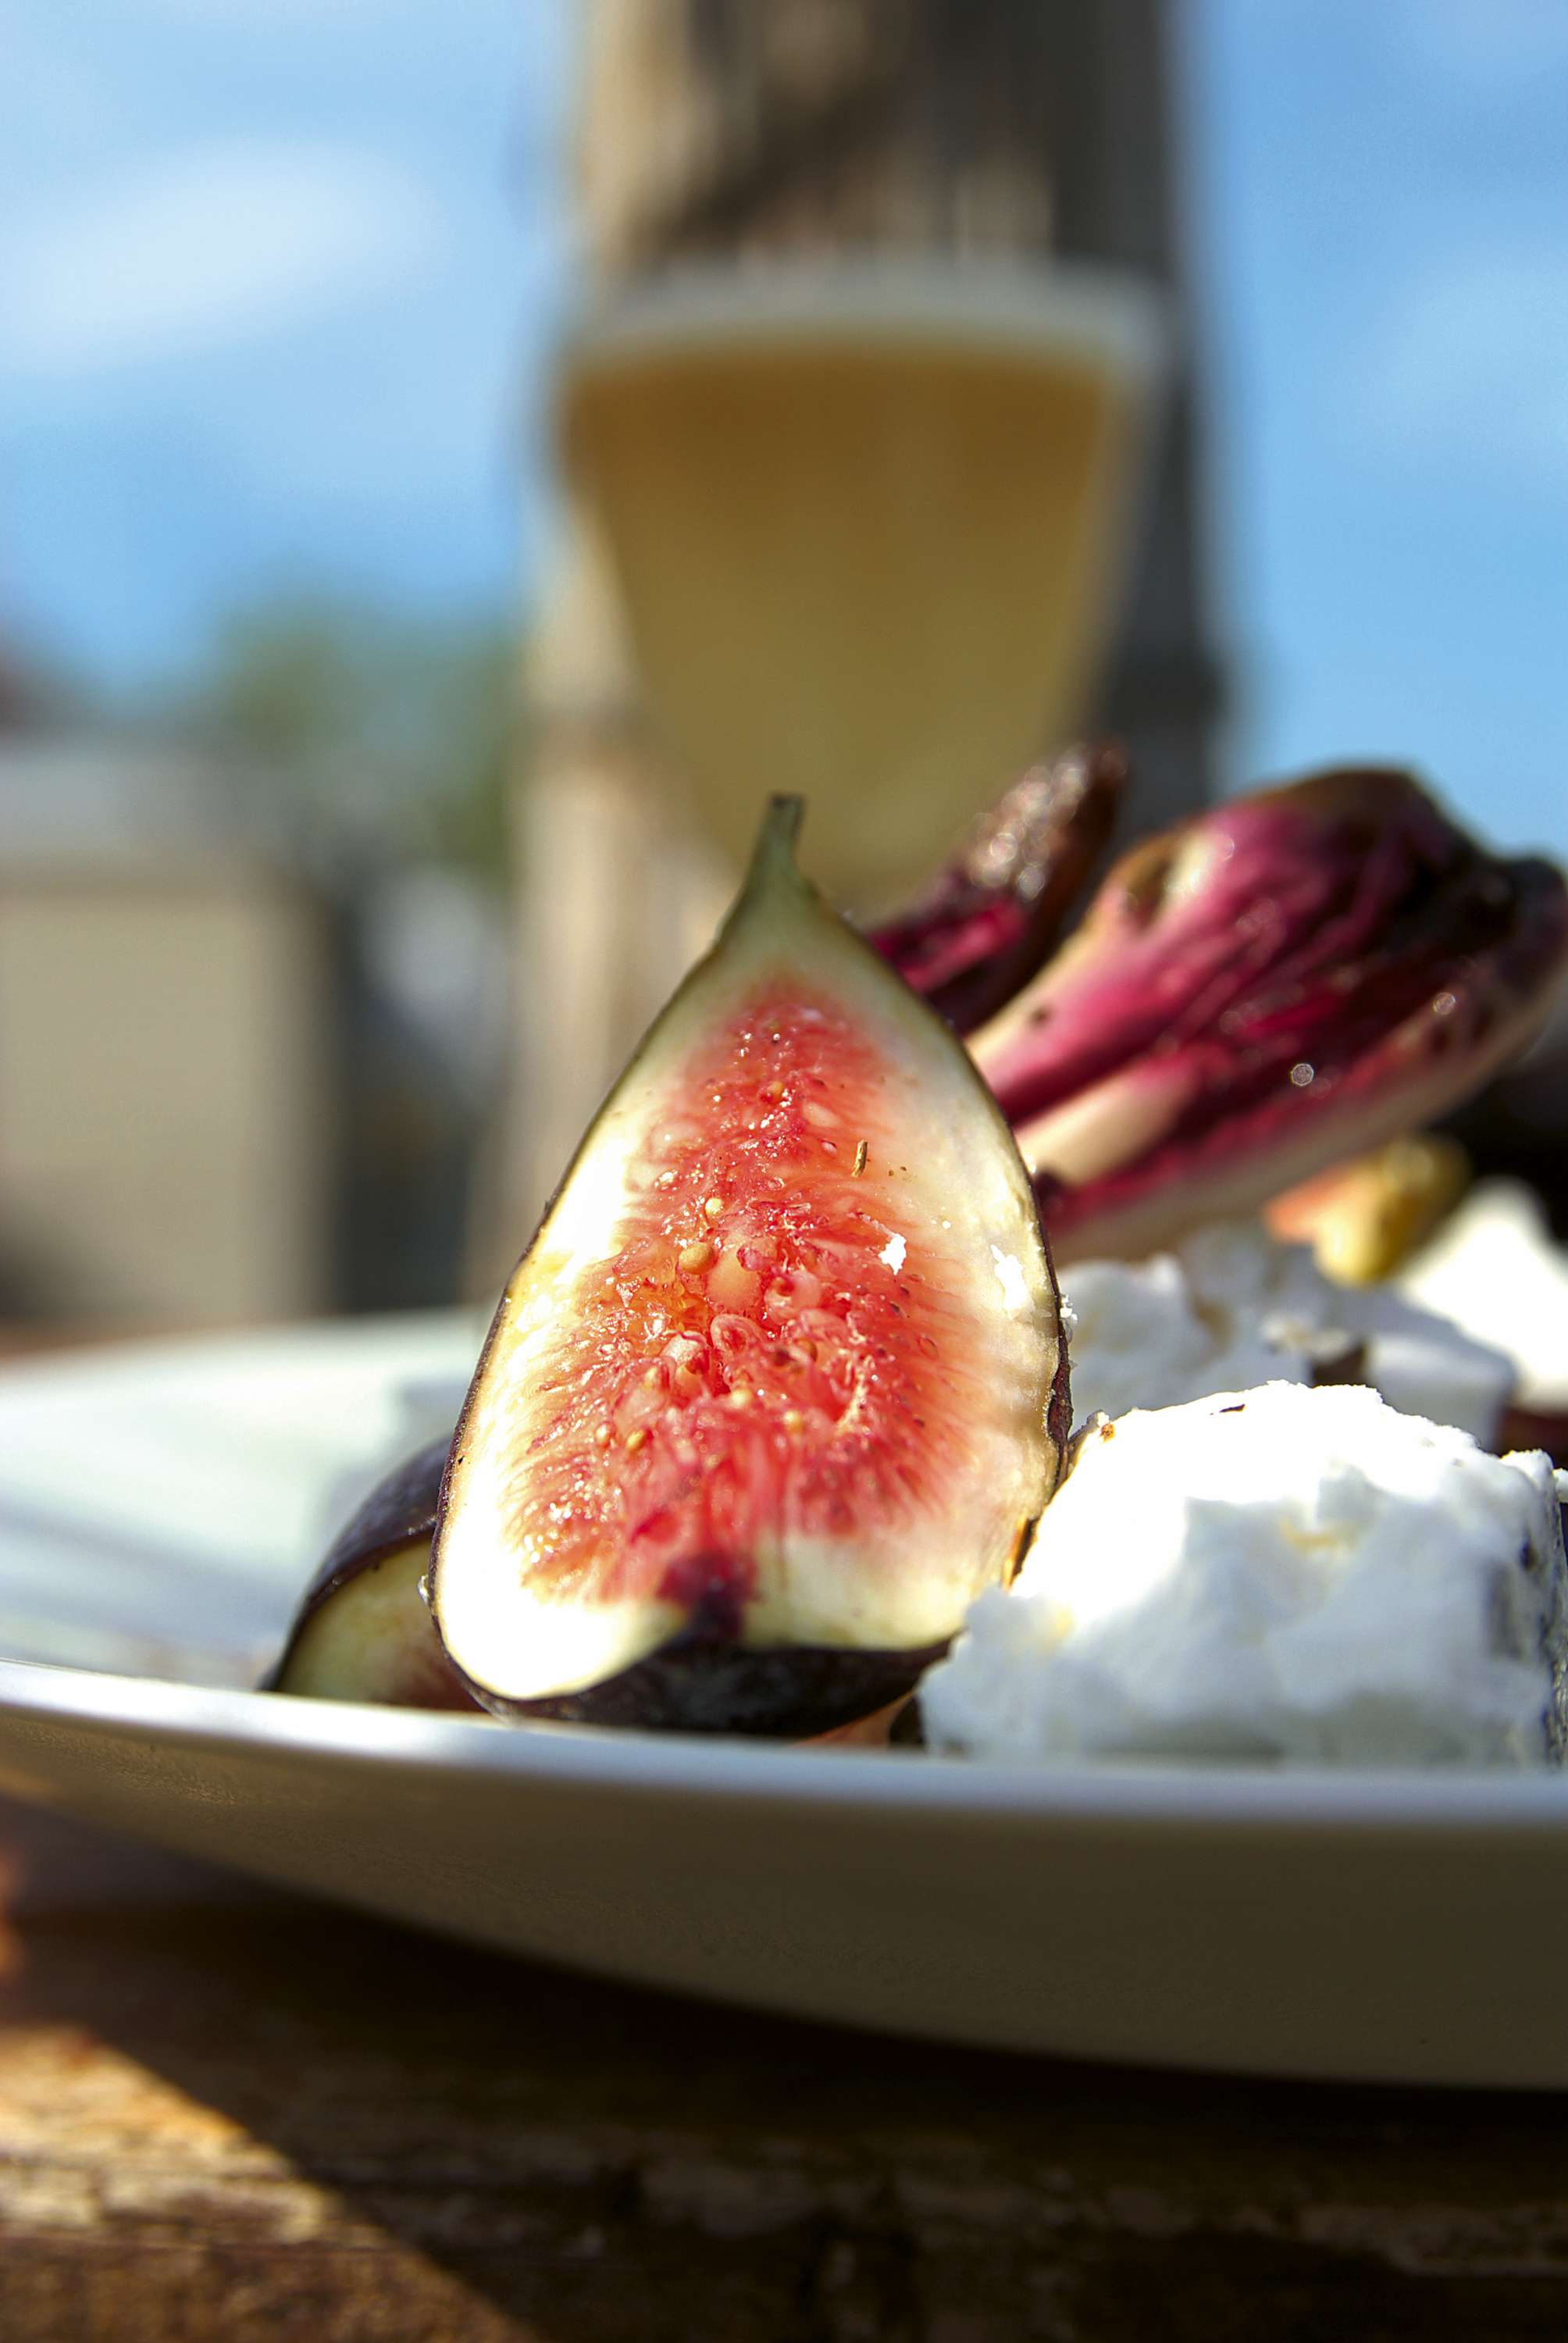 Salate & Drinks: Radicchio vom Grill & Lola